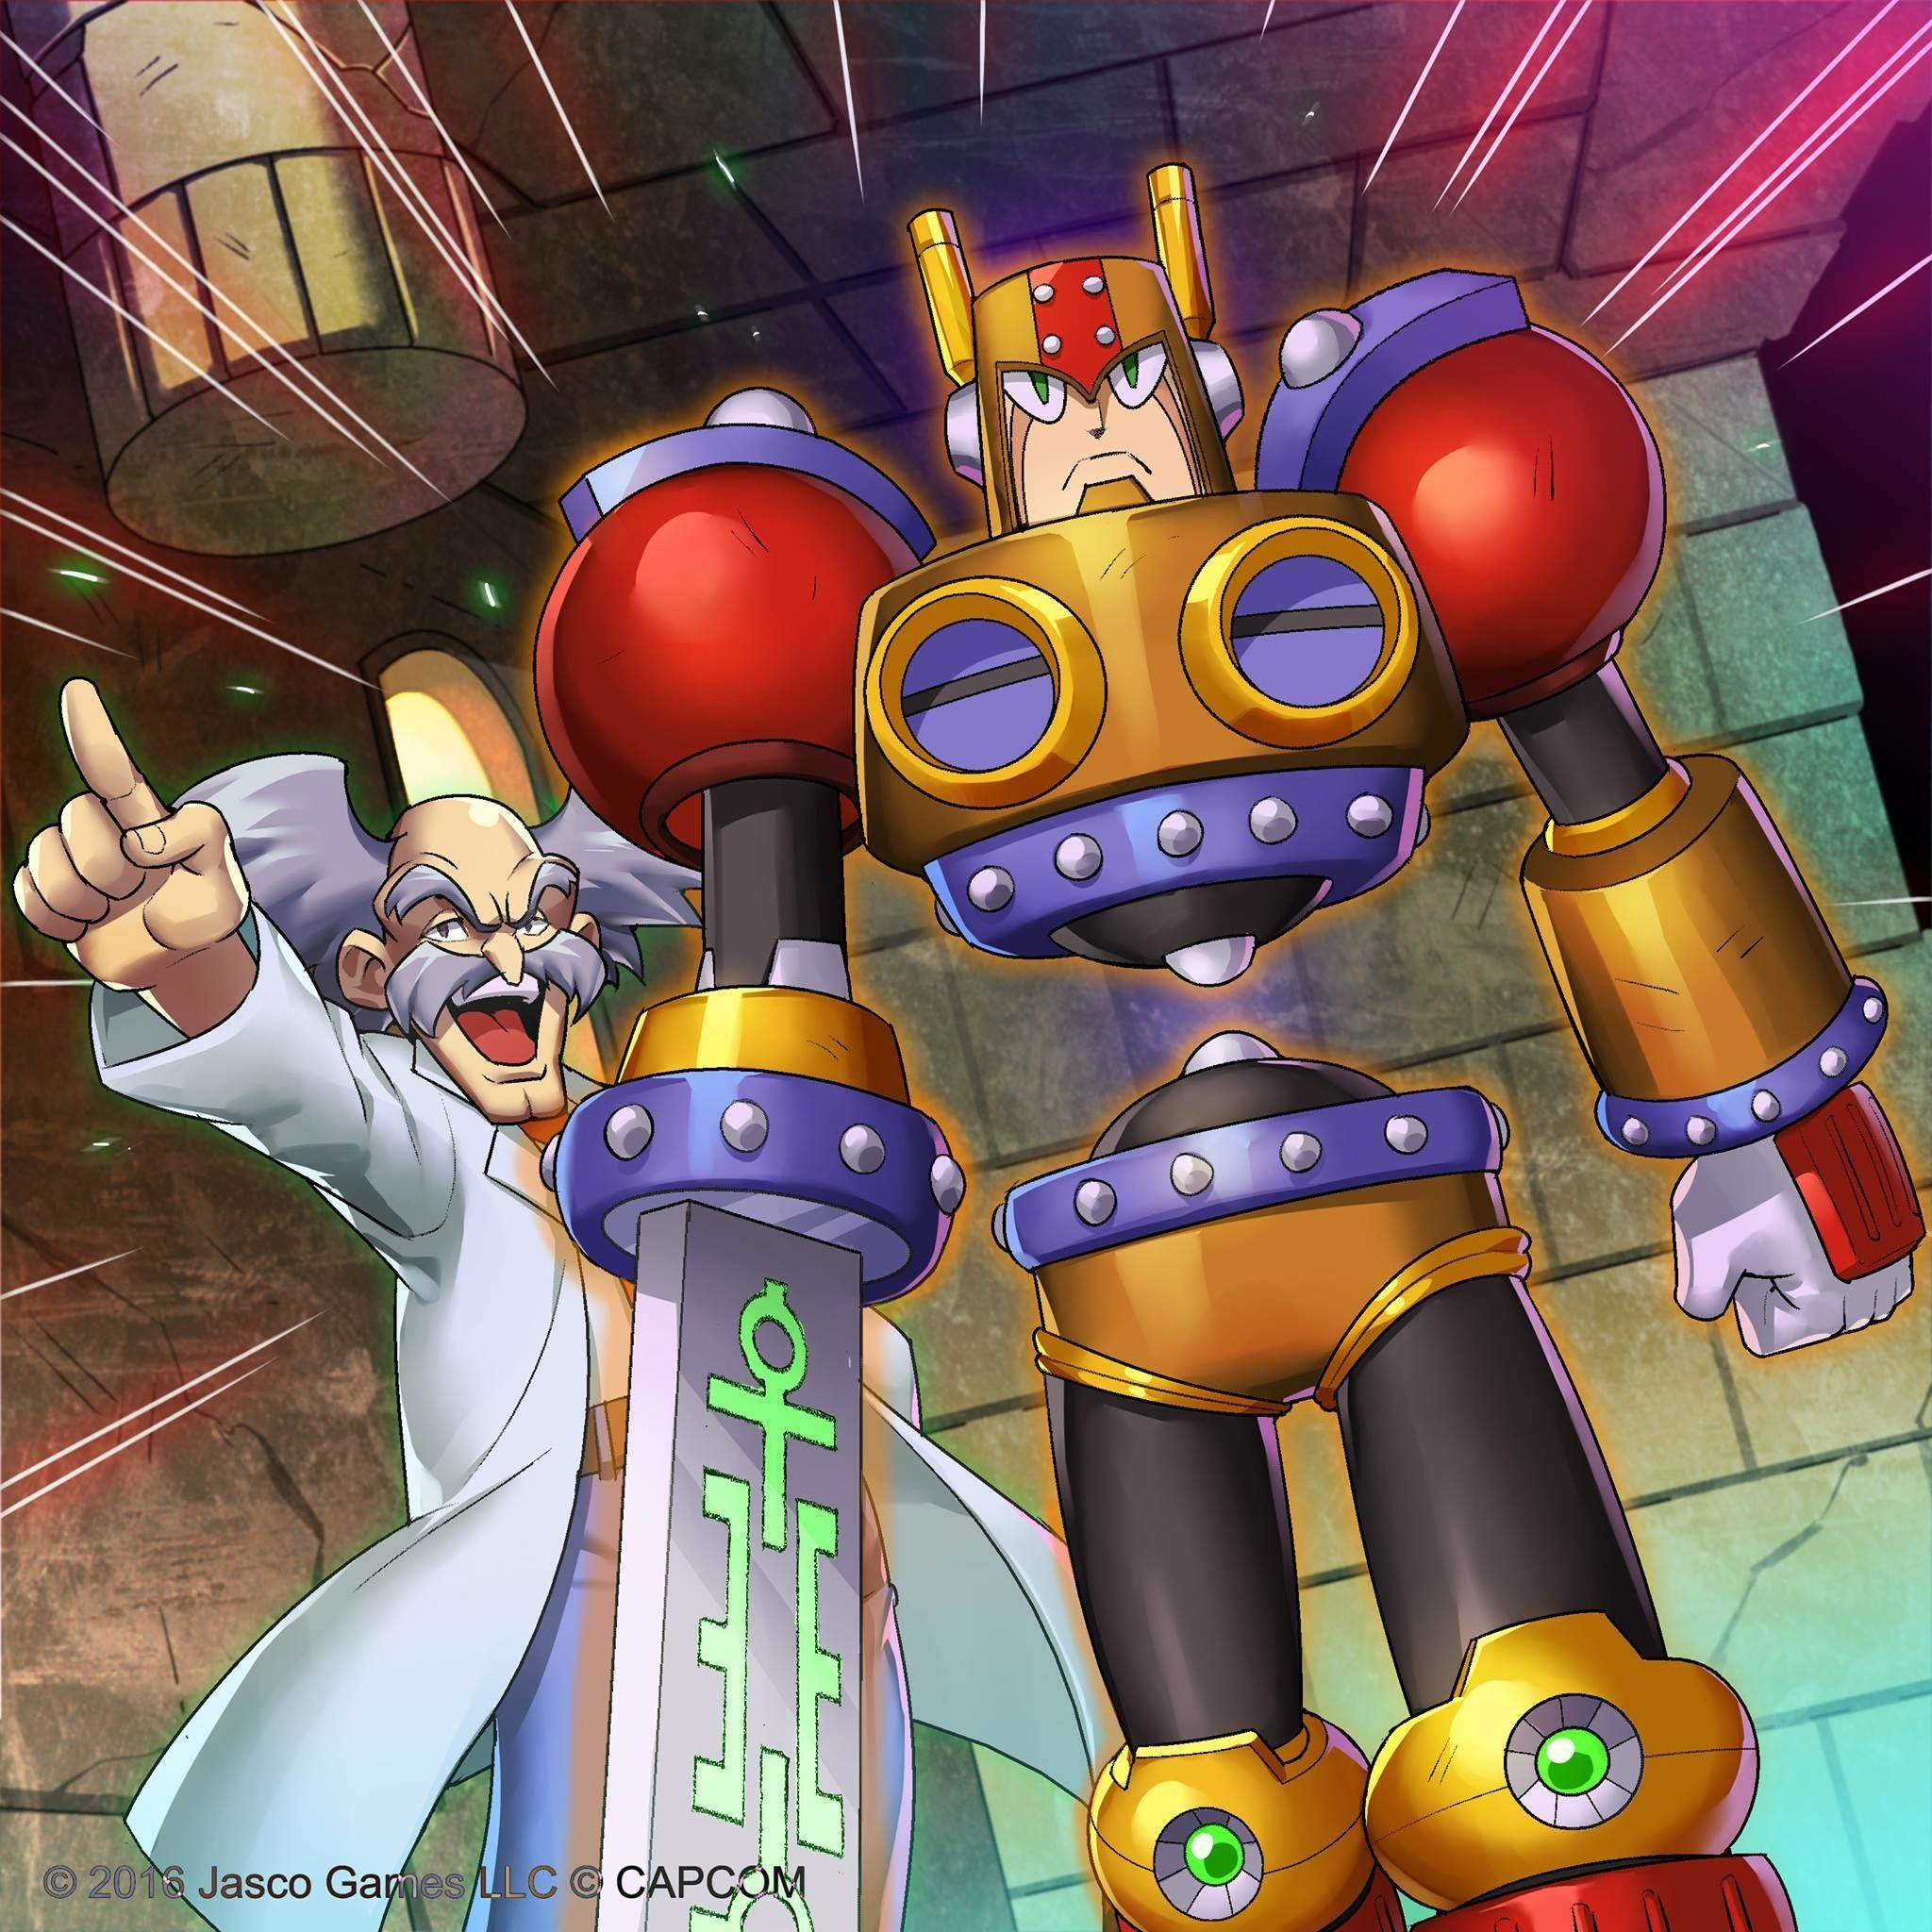 Dr. Wily and Sword Man